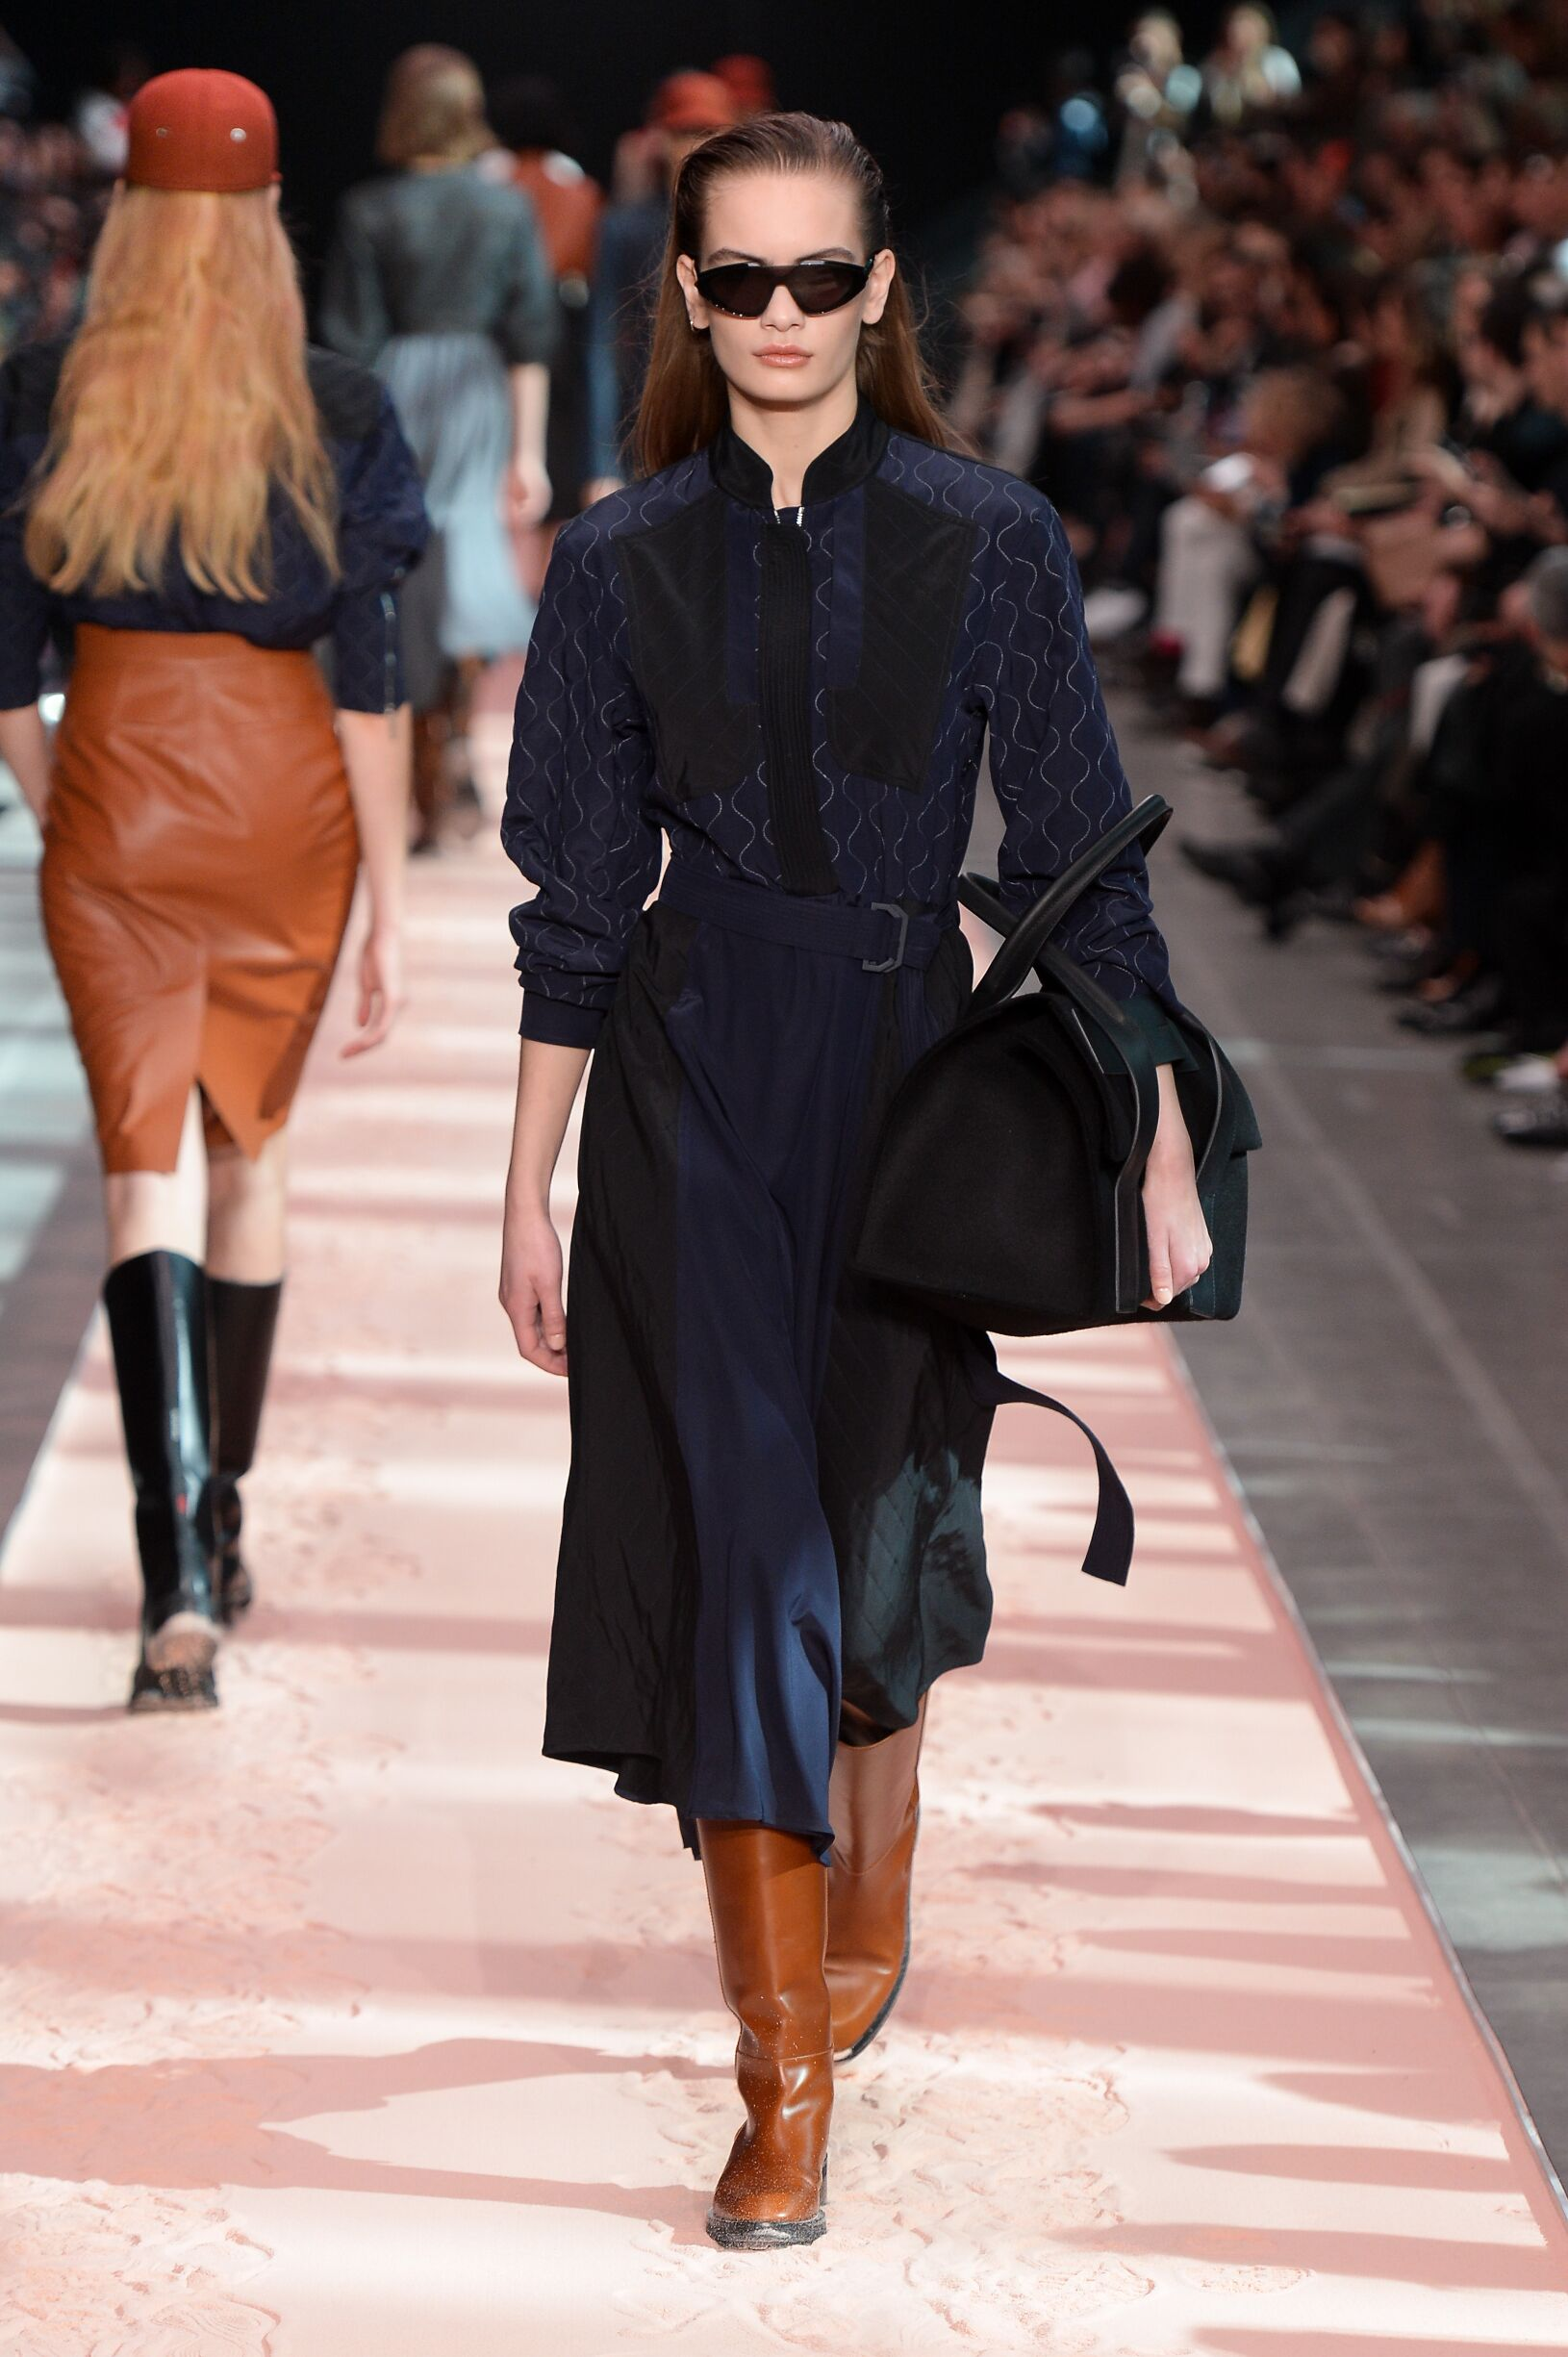 2019 Sportmax Fall Catwalk